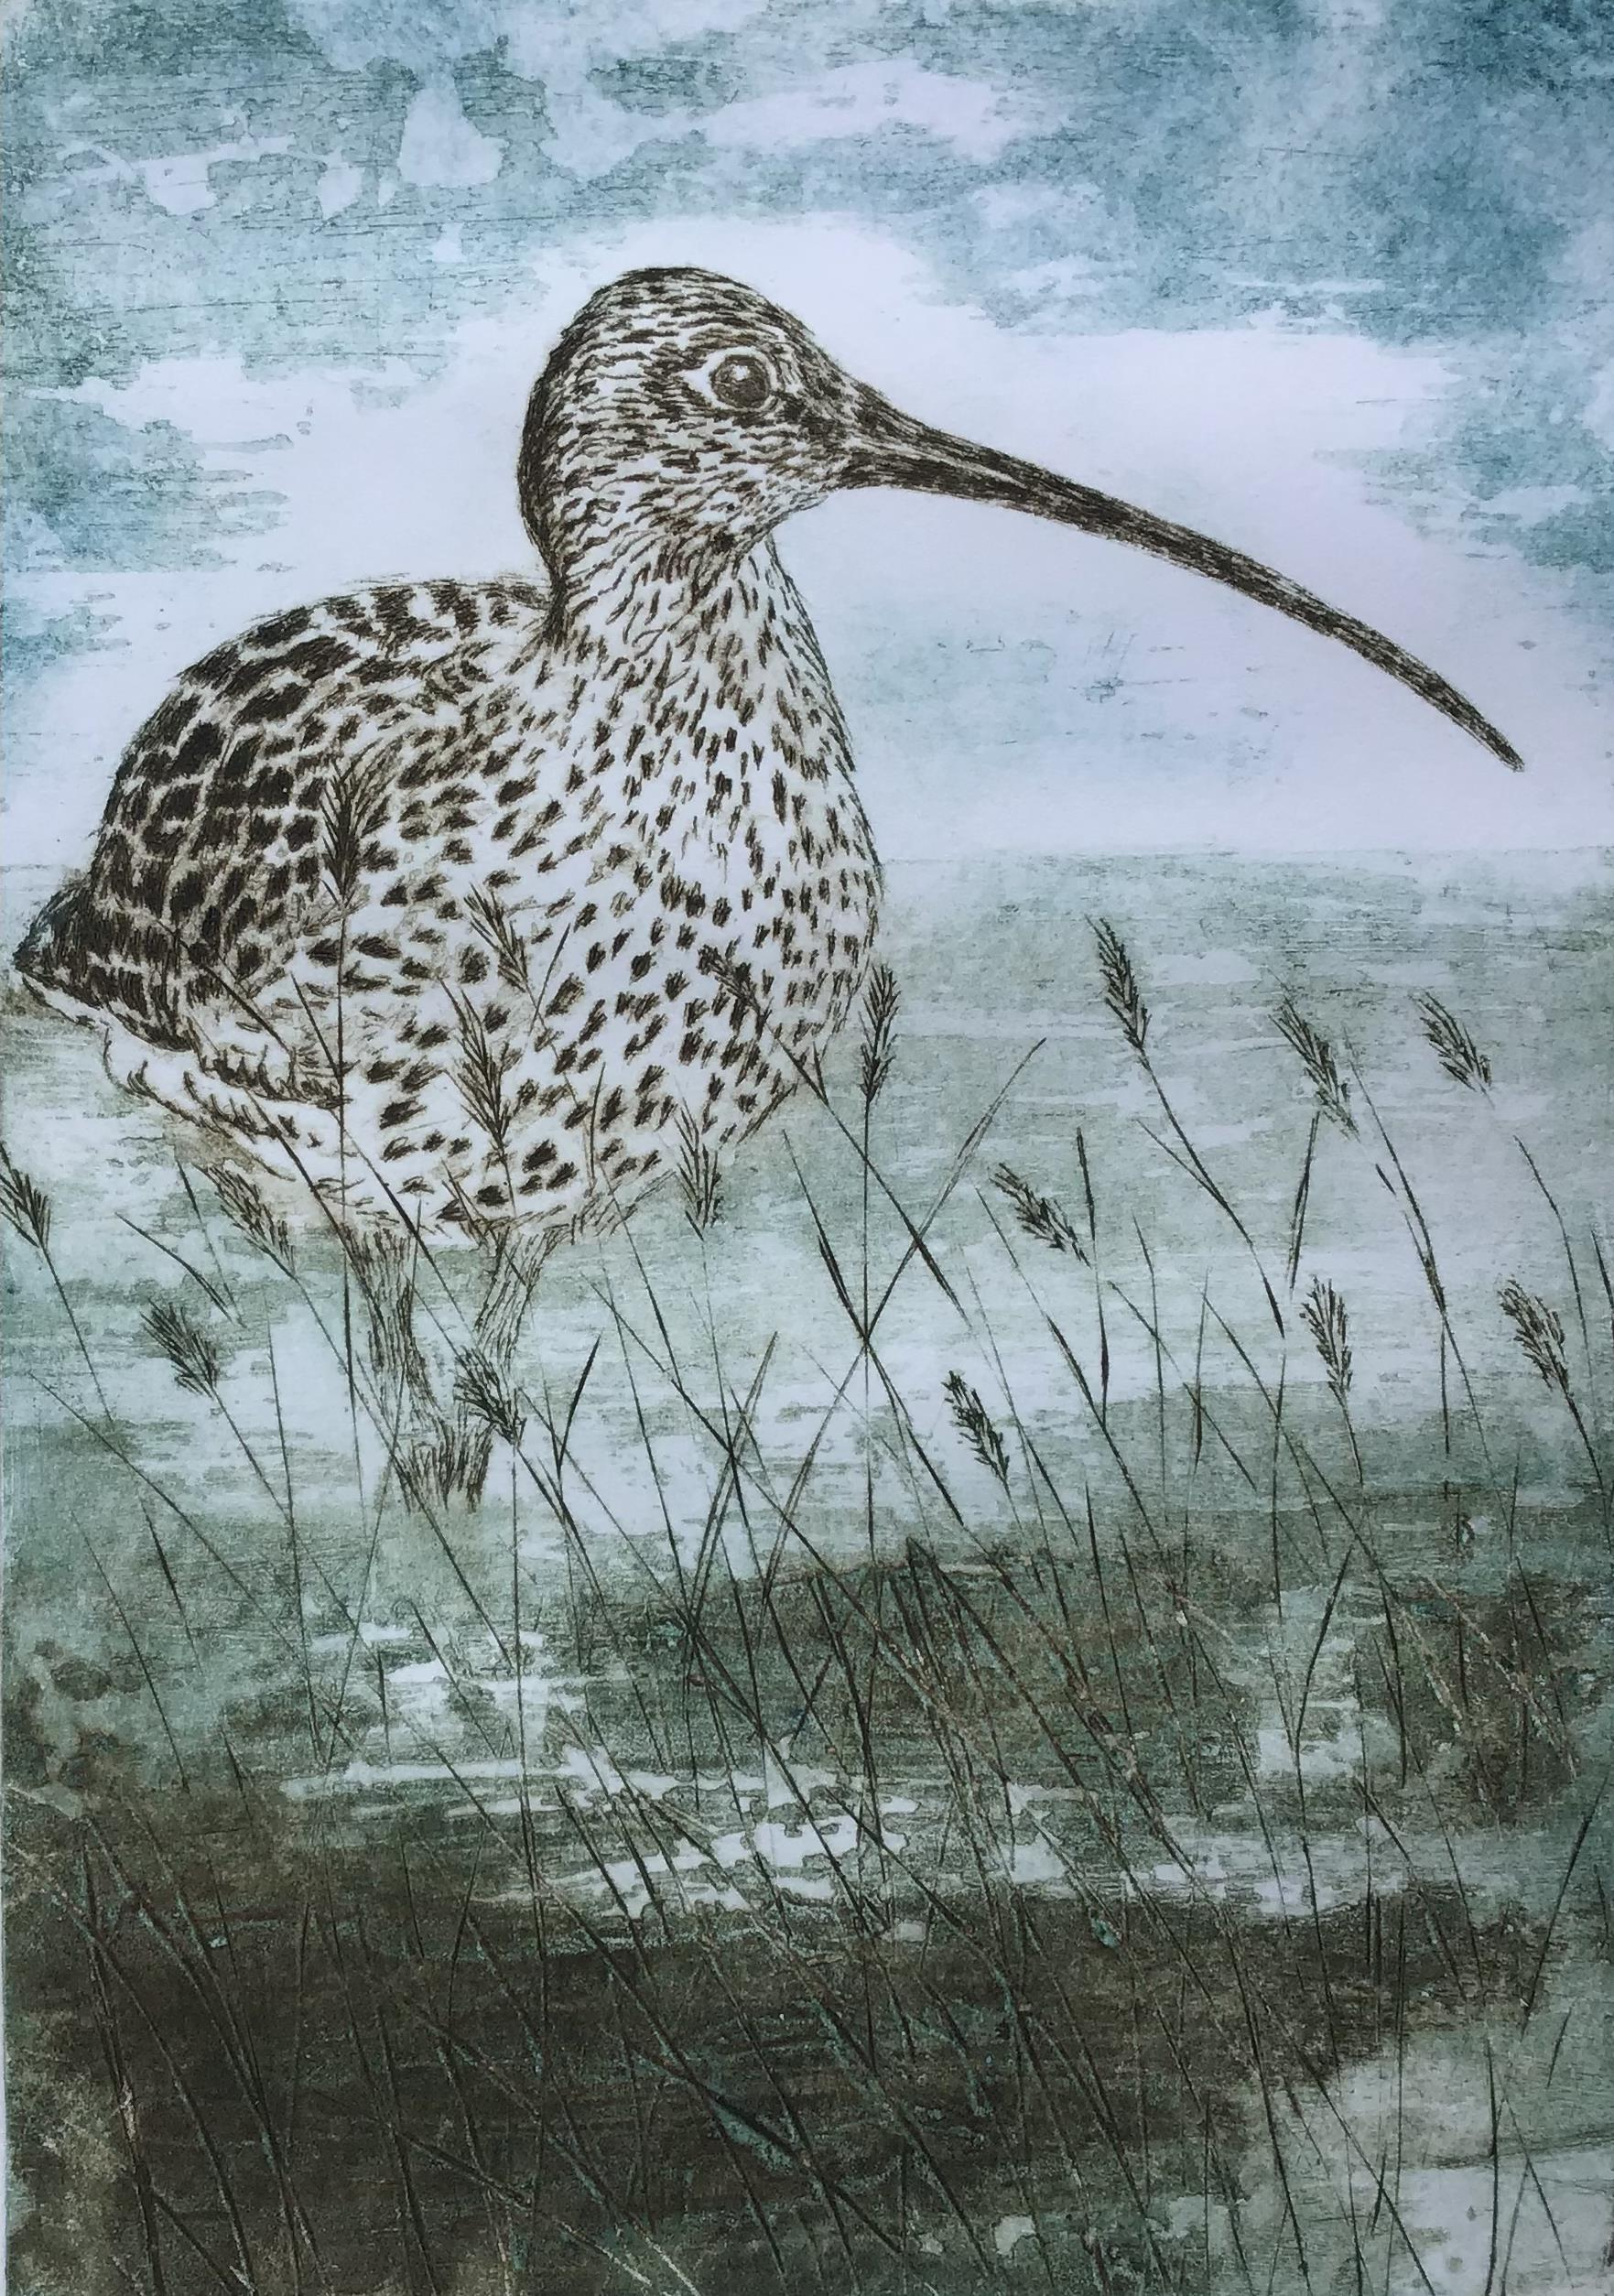 Curlew by the River Greta